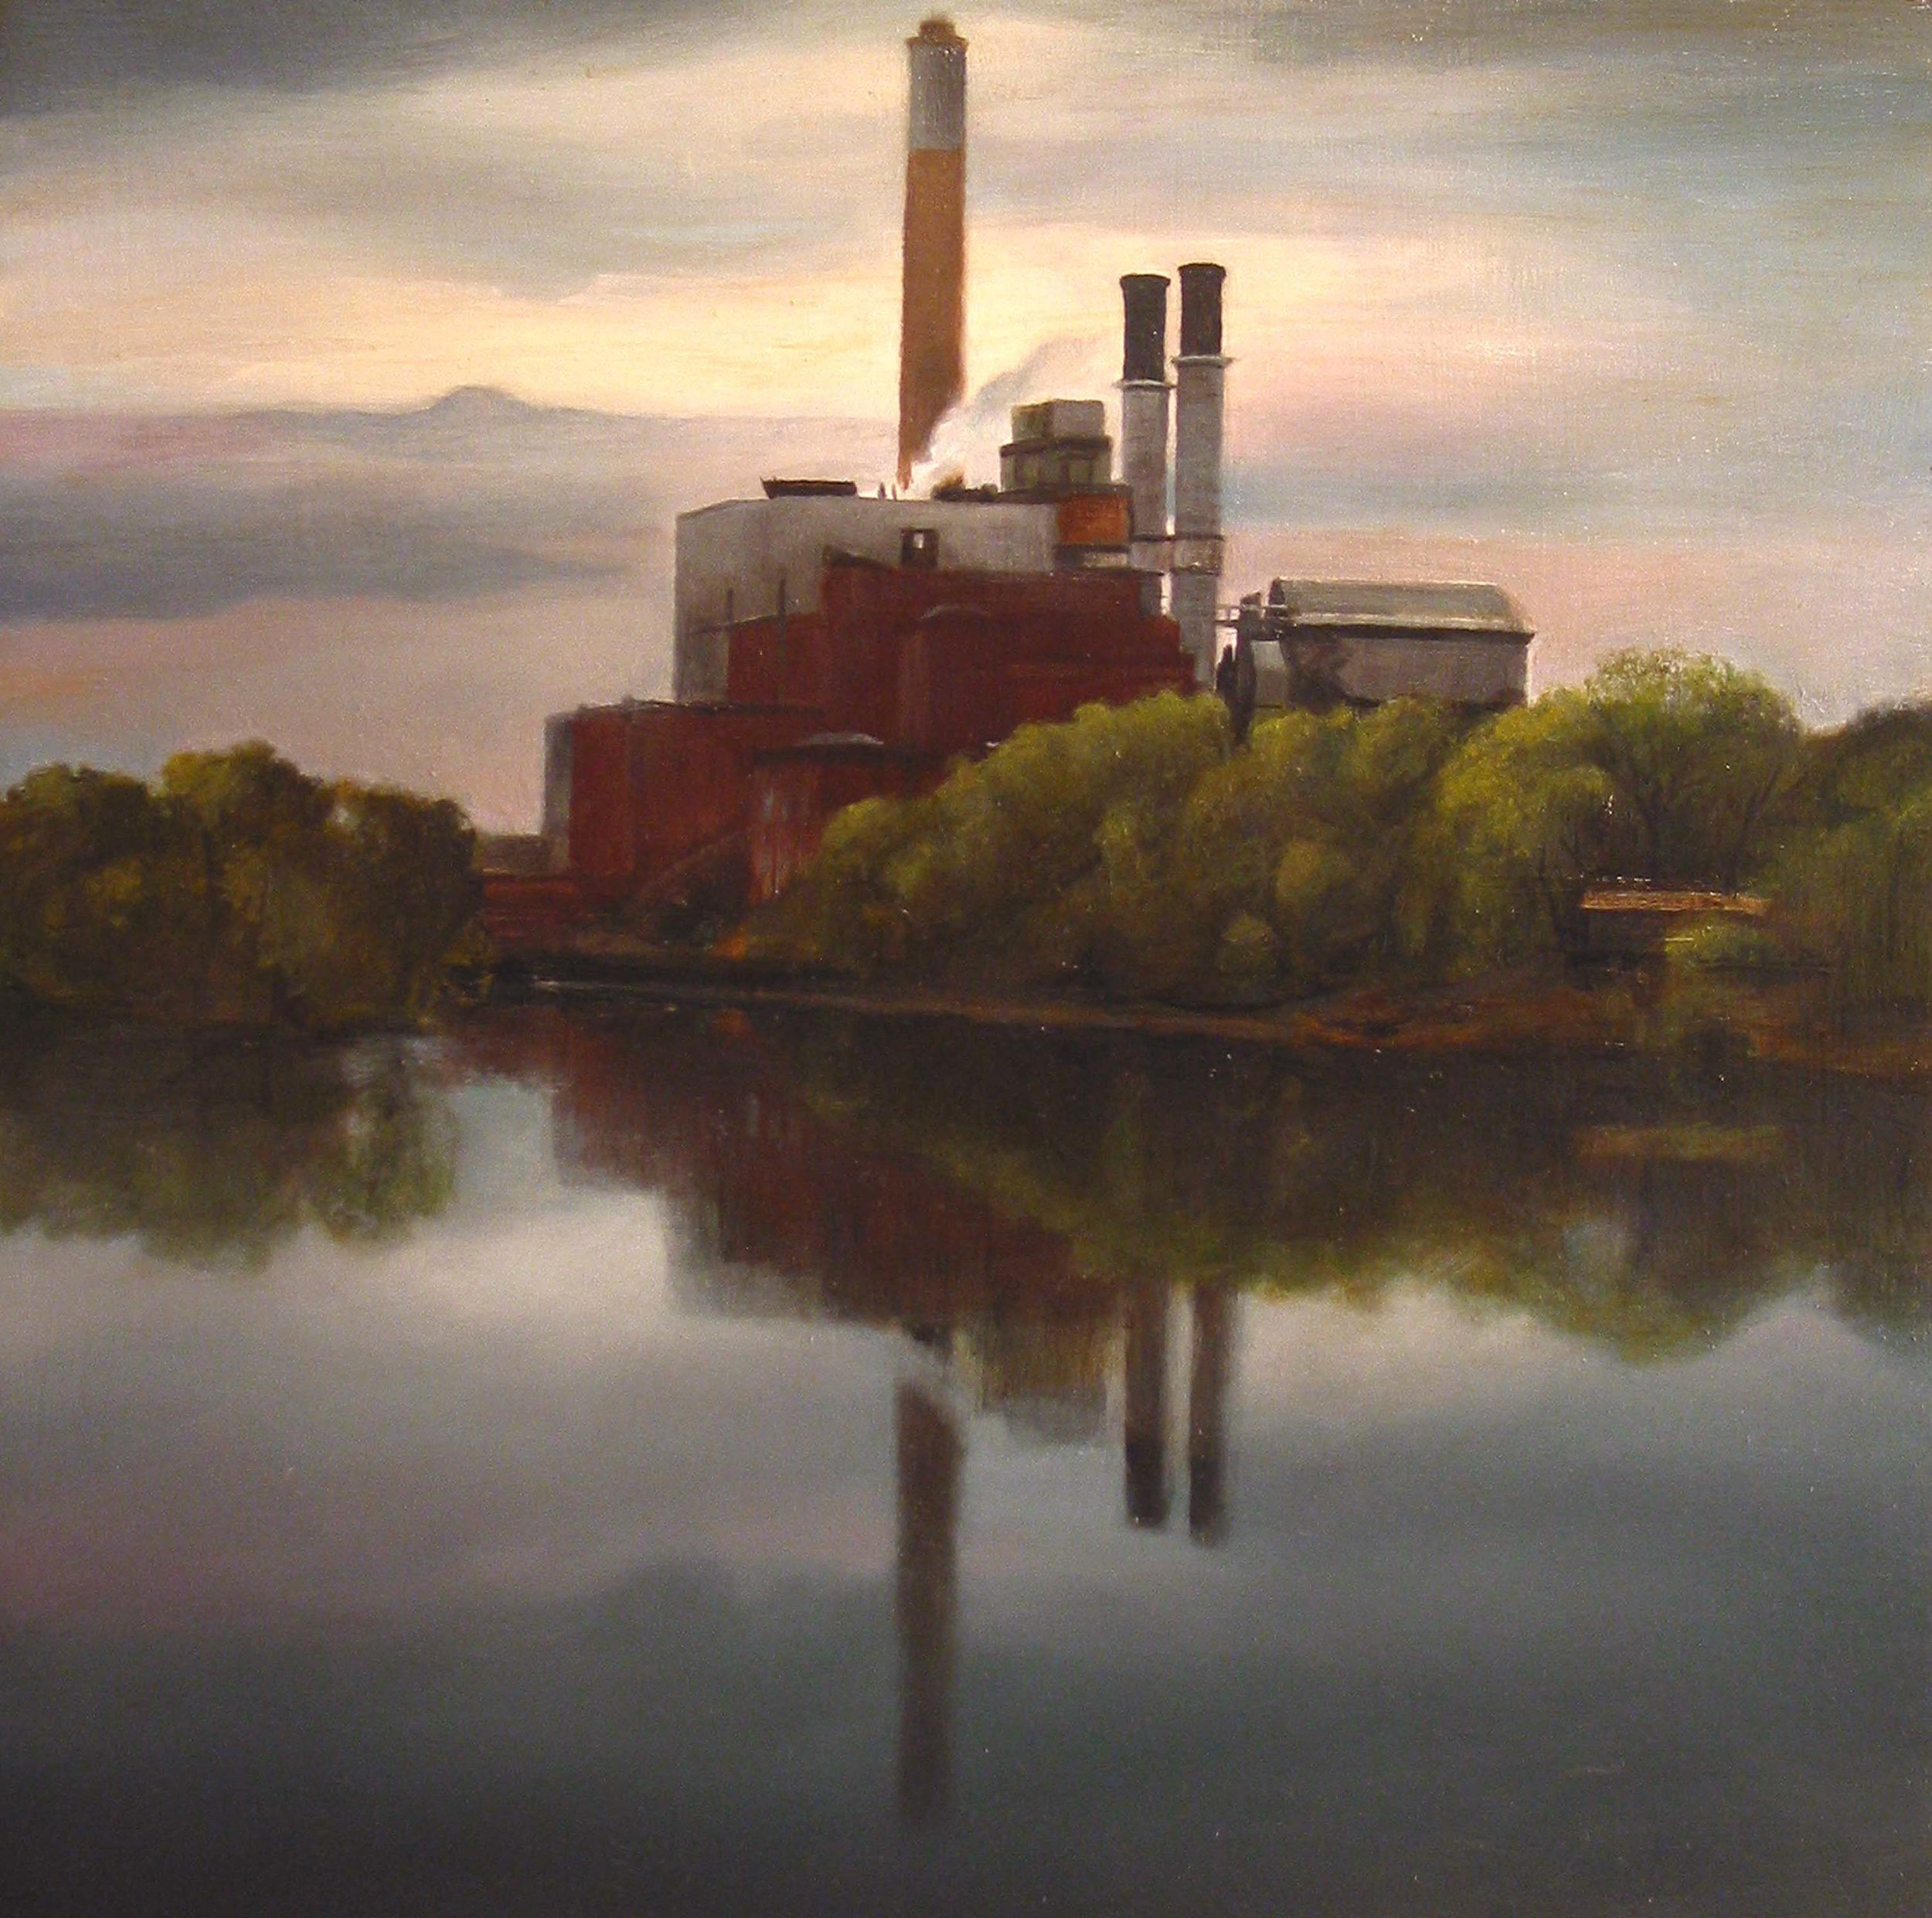 Mississippi River View     Northeast Minneapolis   2006  Oil on panel  9 x 9 inches